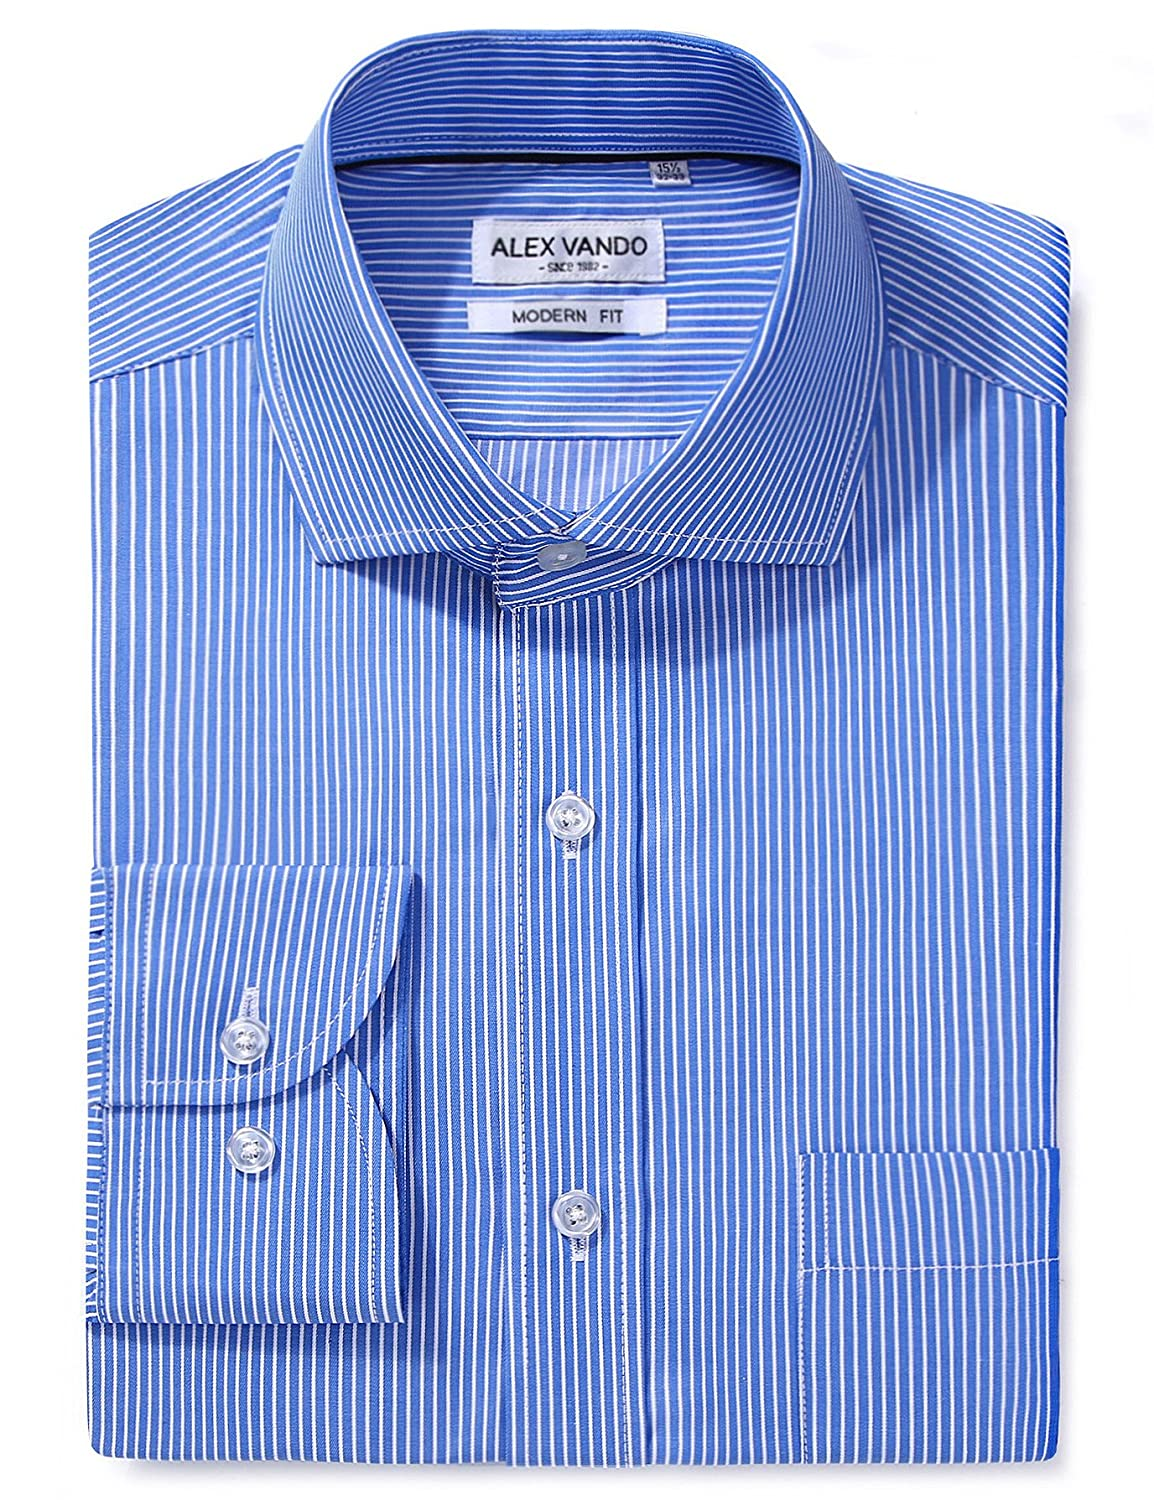 dfe5ac2fa19 Features  Long sleeve cotton casual dress shirts featuring spread collar  and a left pocket